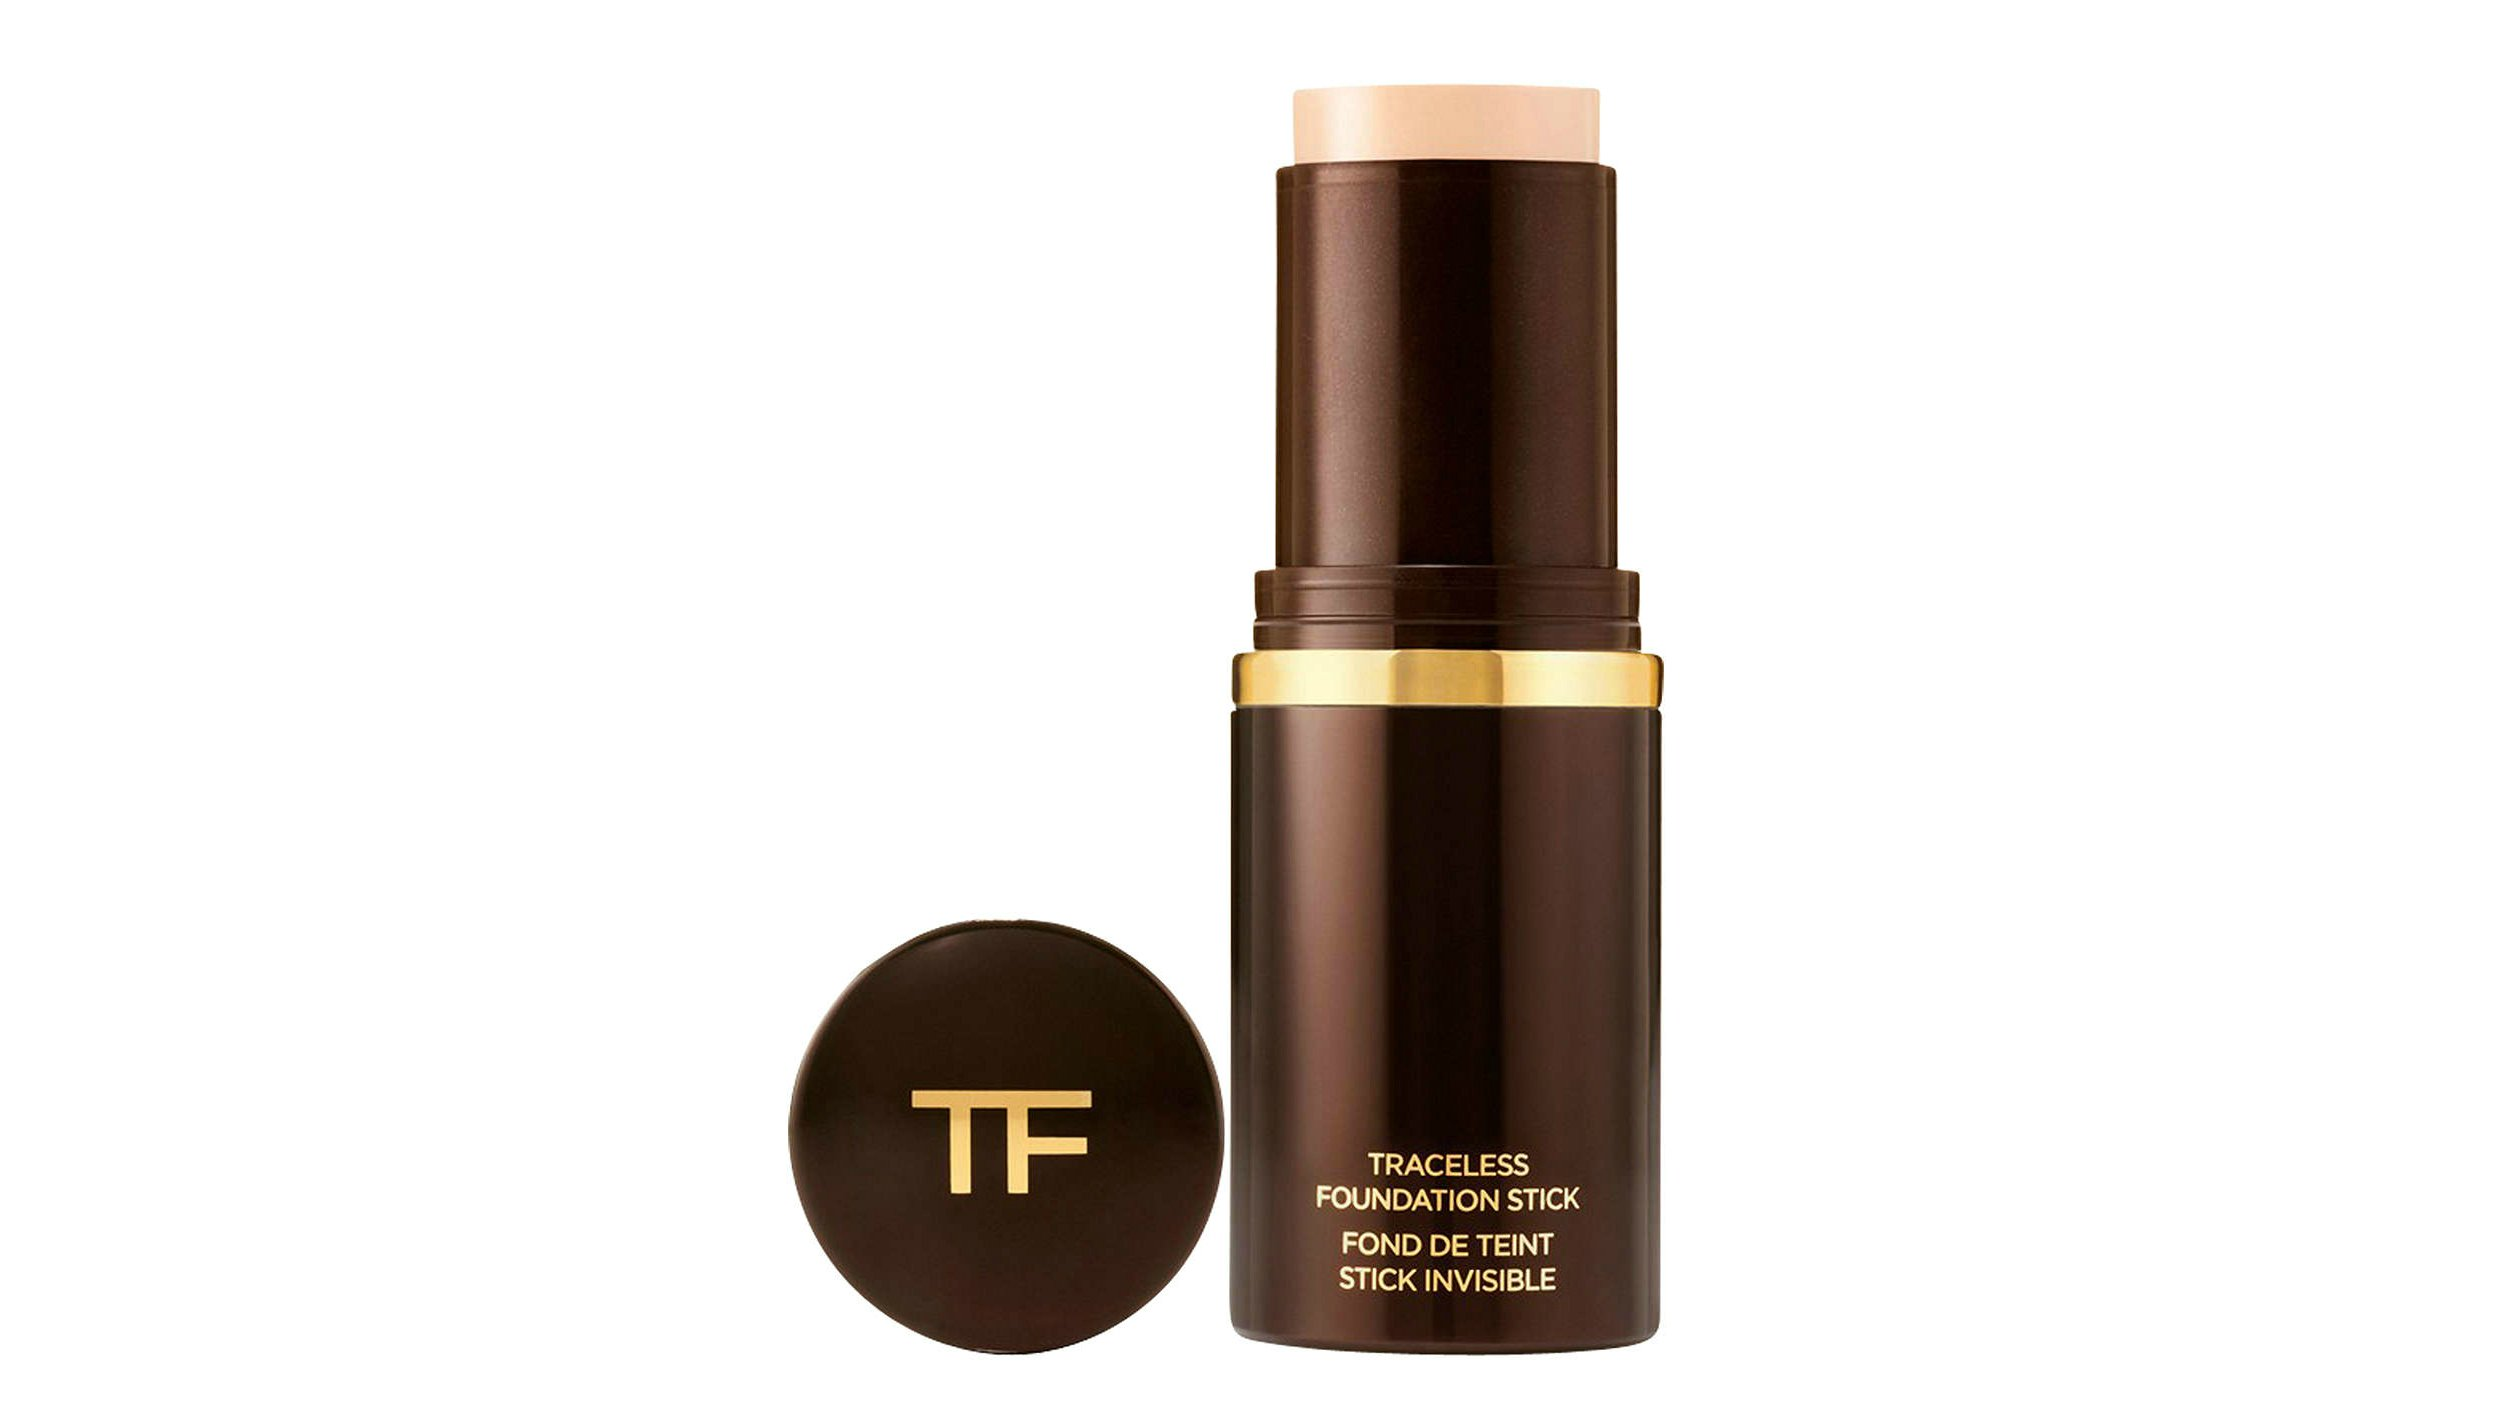 Best Foundation For Combination Skin 2021 The Best Liquid Powder And Stick Foundations From 13 Expert Reviews